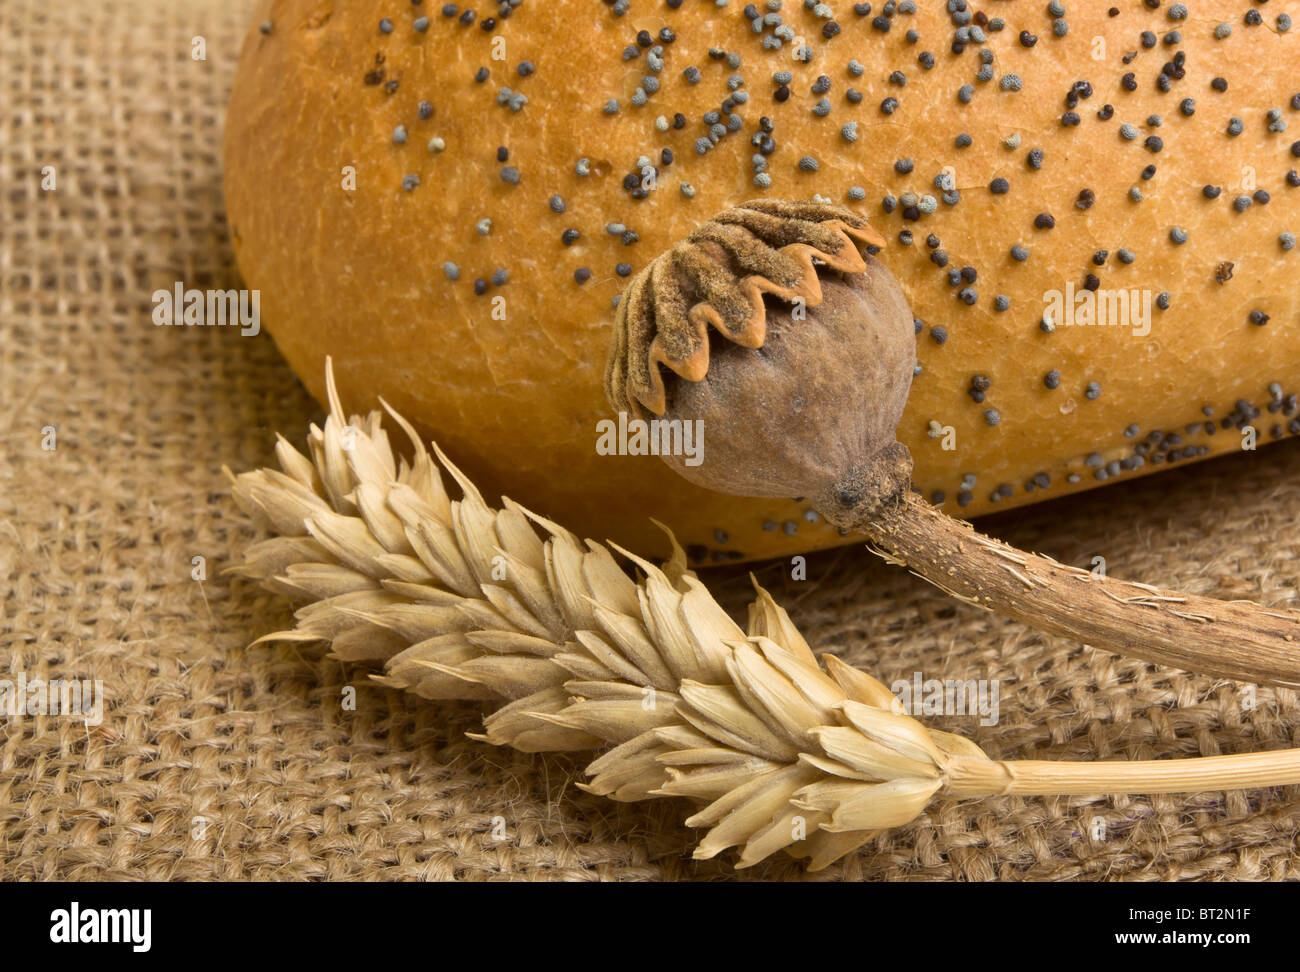 Poppy seeded bloomer on sacking with dried ear of wheat and poppy stem - Stock Image